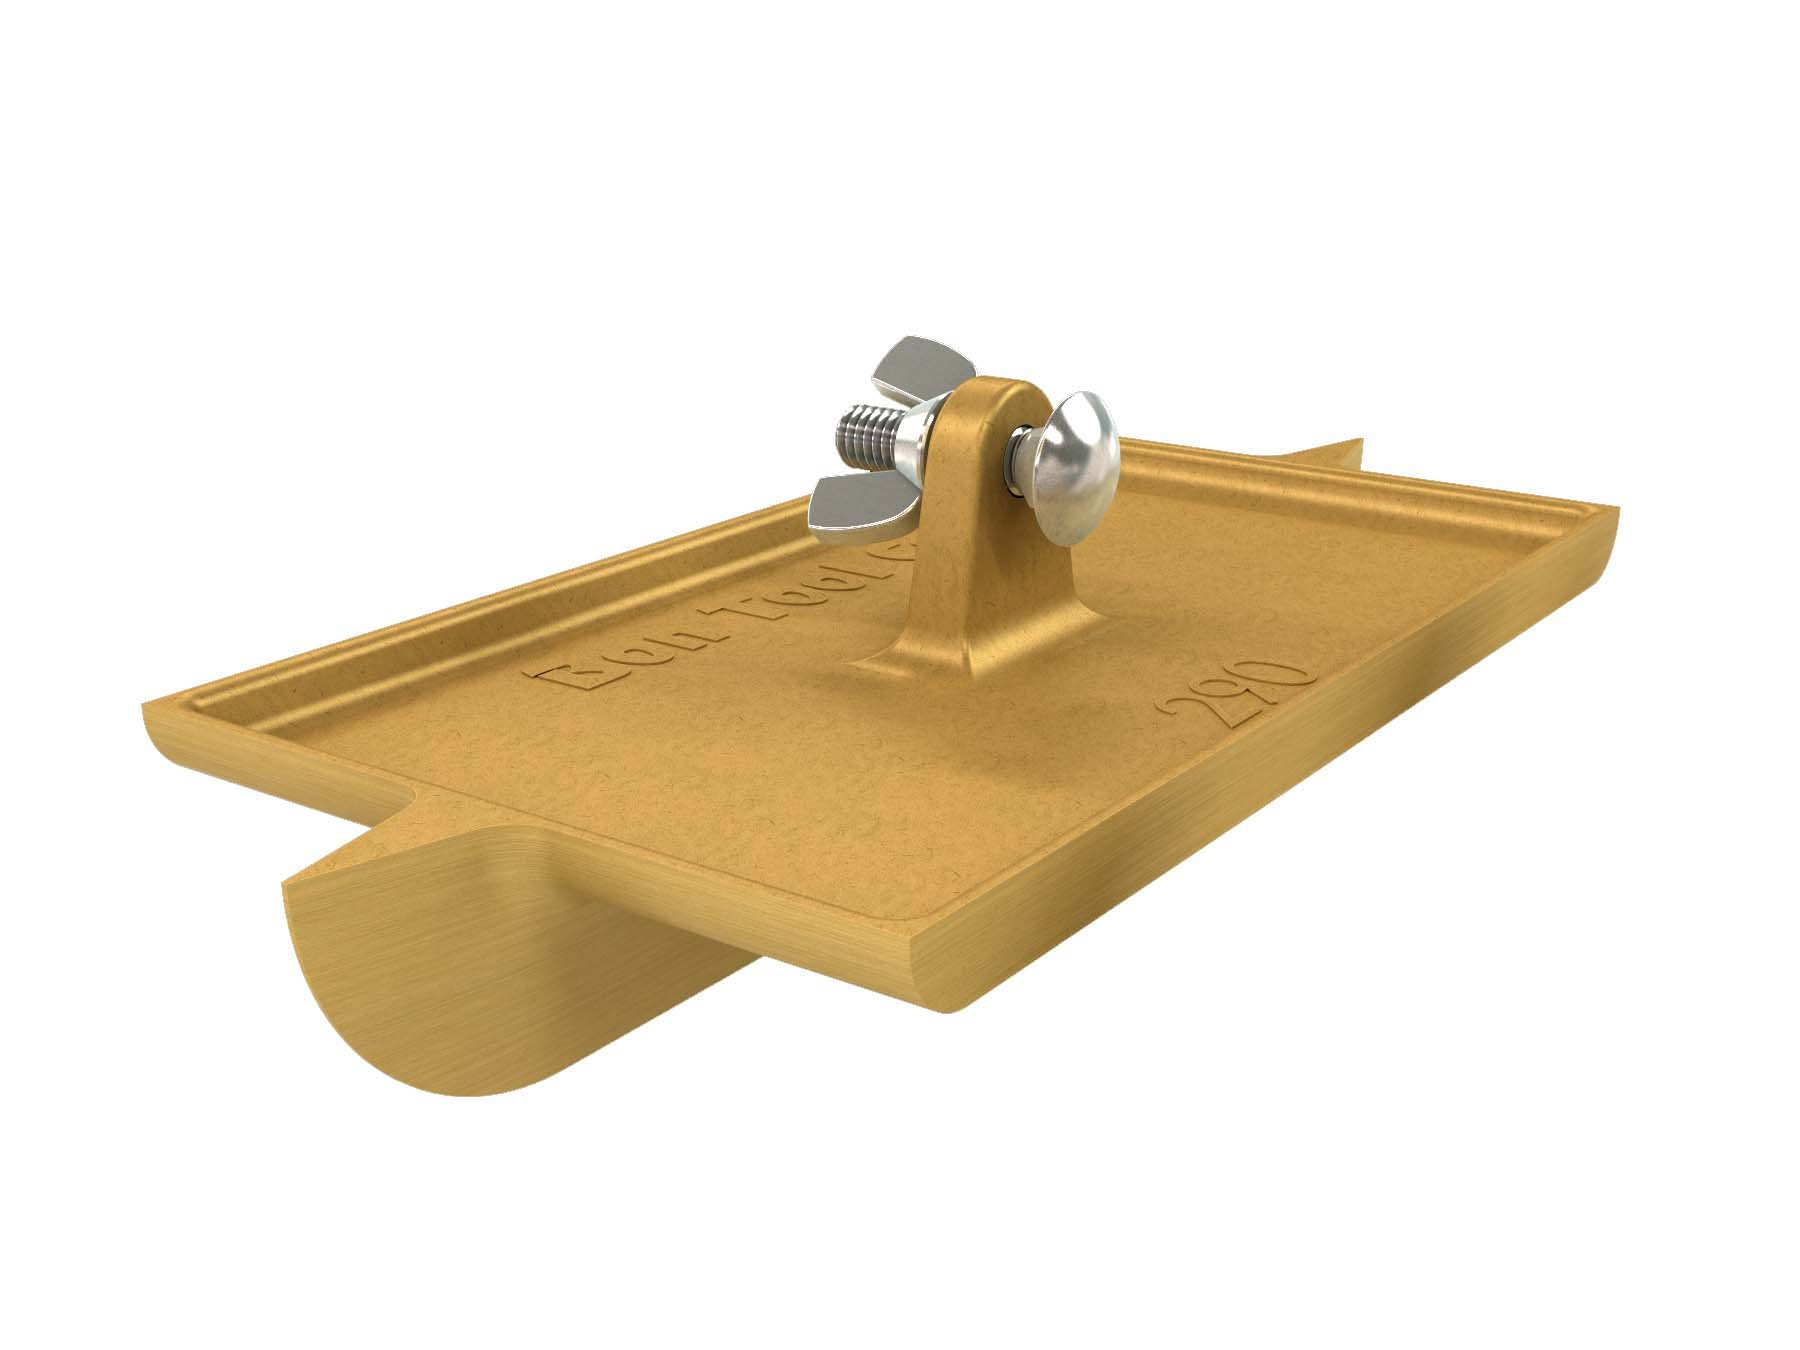 Bon 12-290 8-Inch by 4-1/2-Inch Bi Directional Bronze Walking Concrete Groover by BON